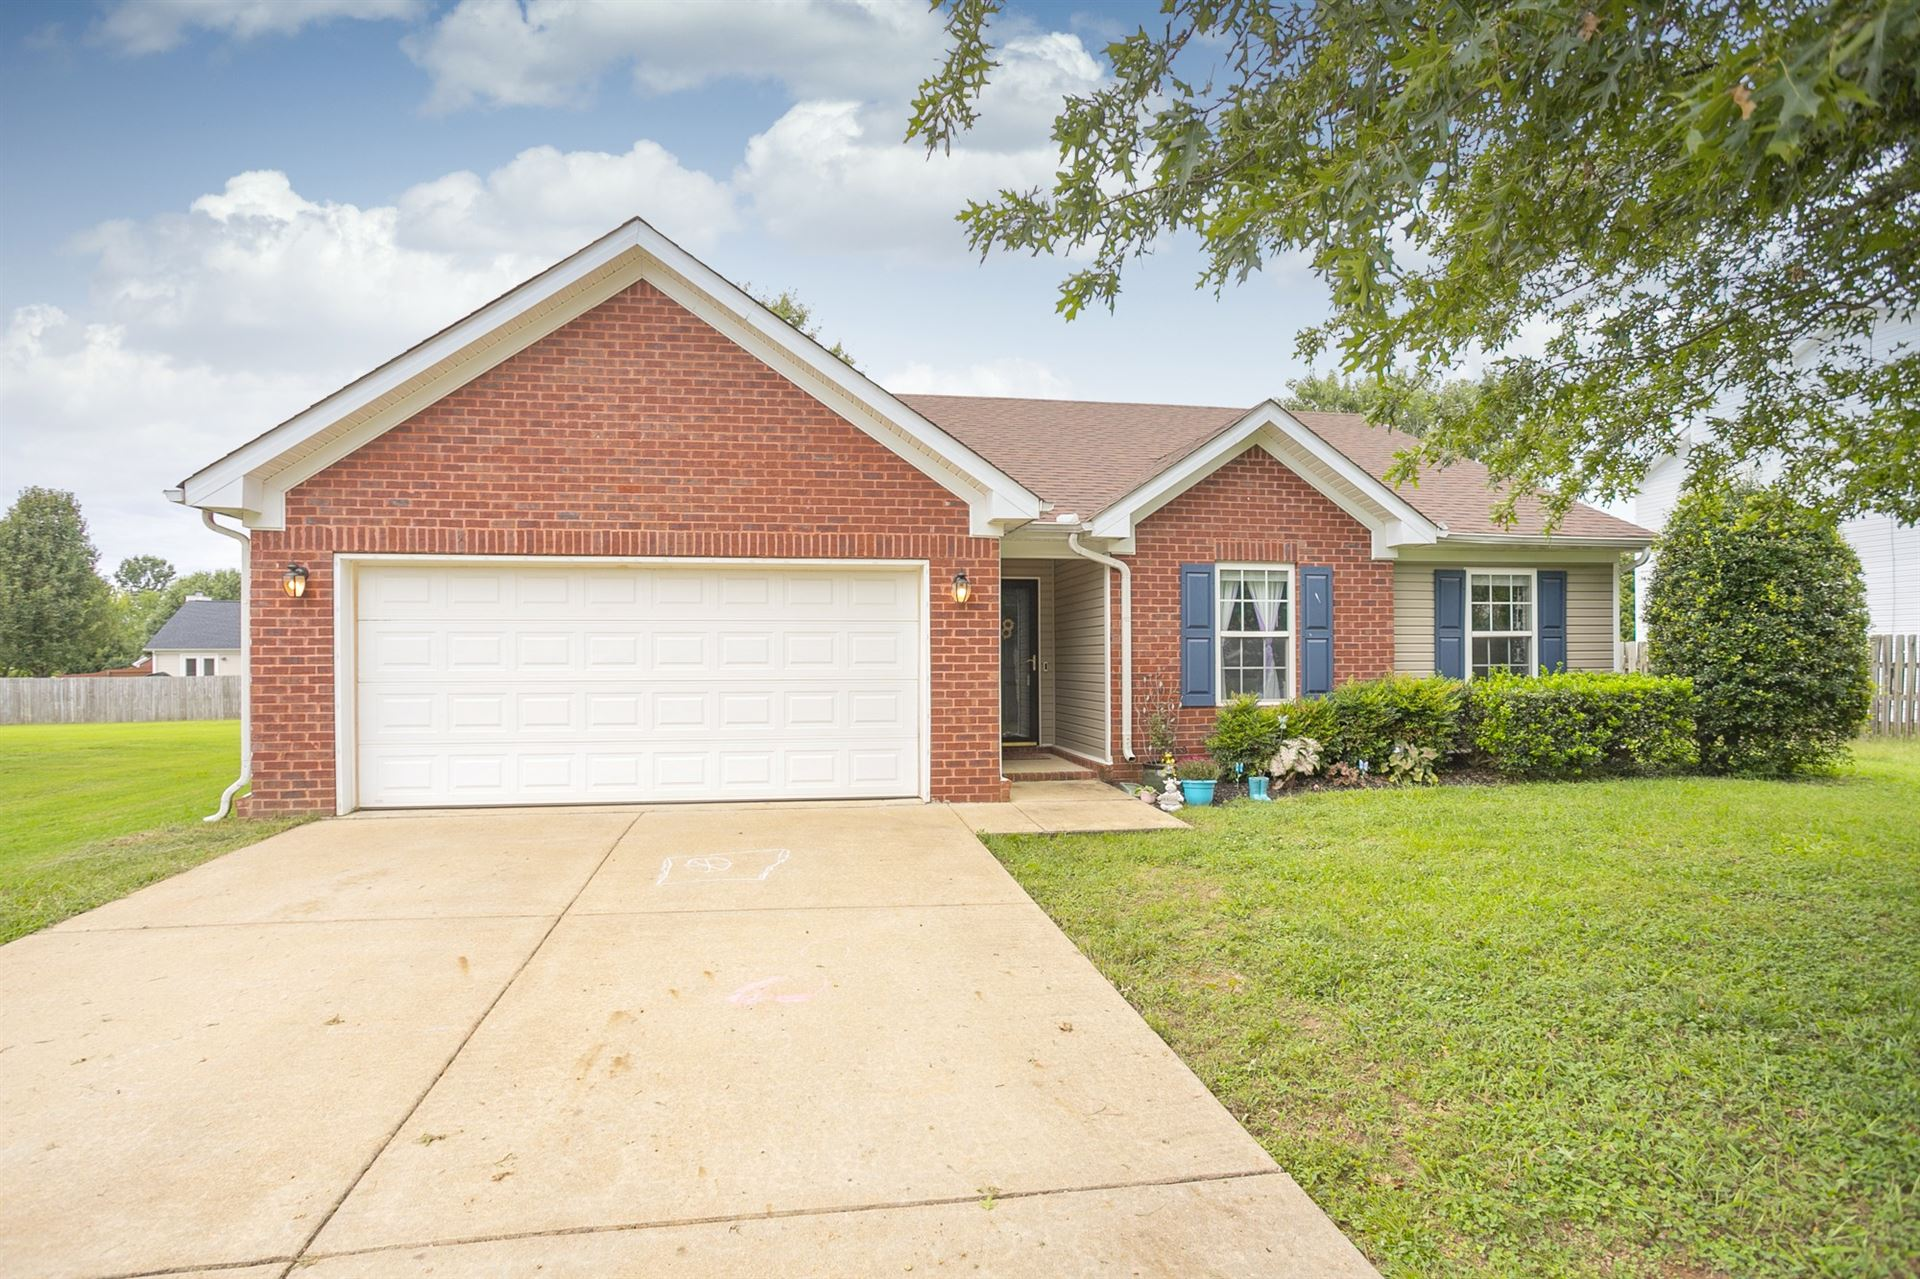 Photo of 2213 New Port Dr, Spring Hill, TN 37174 (MLS # 2190059)